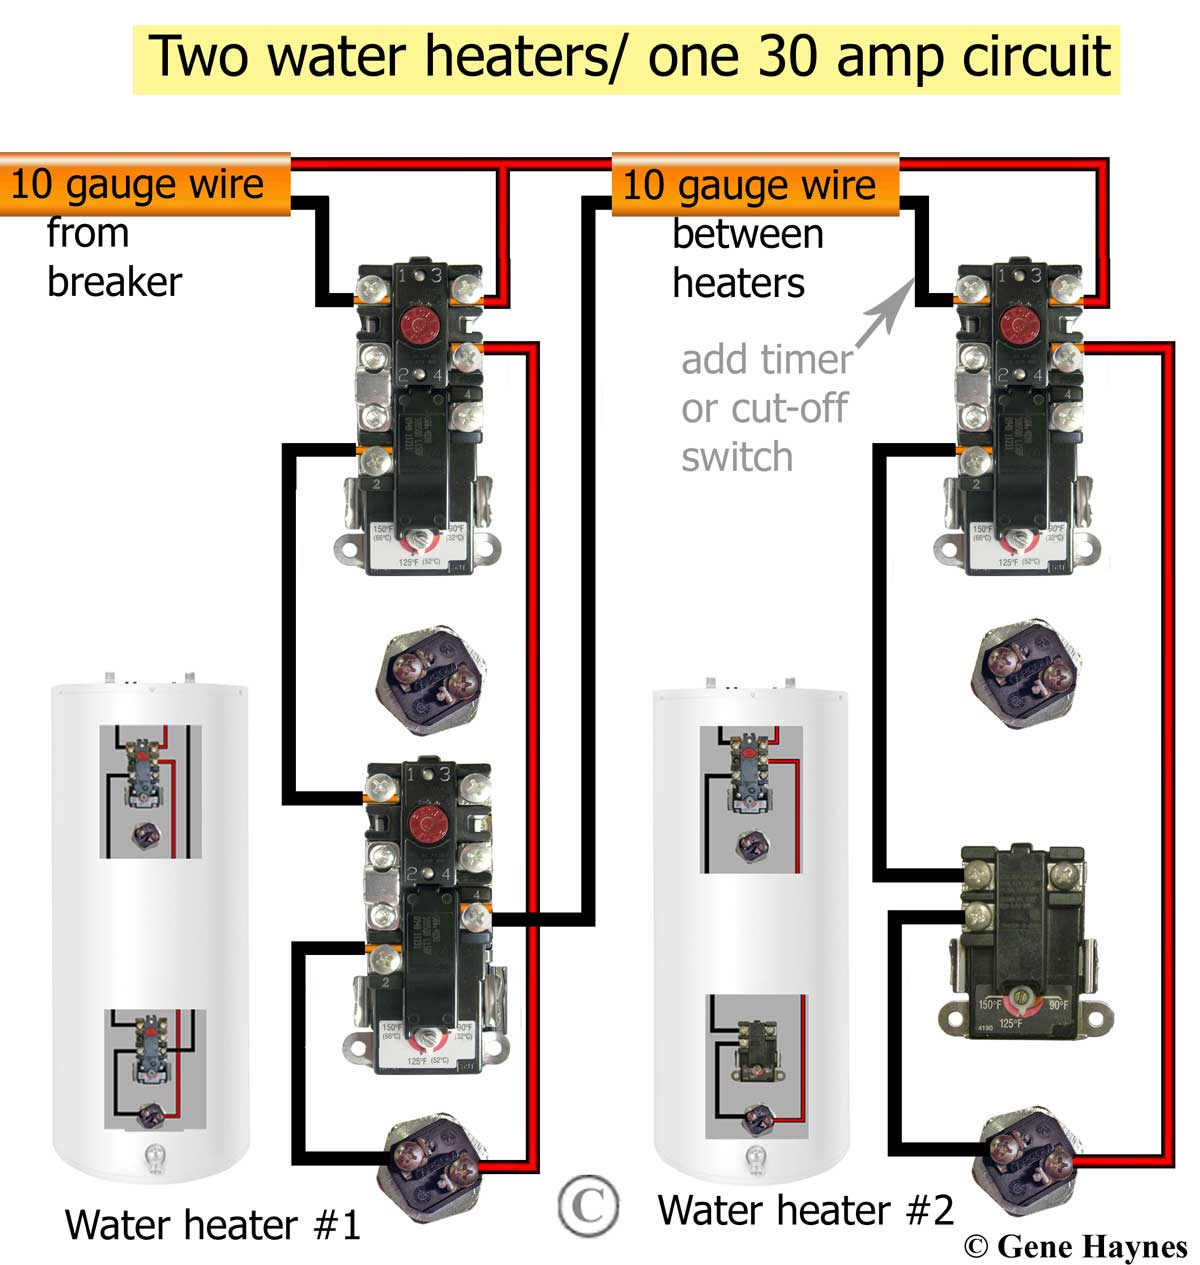 How to wire water heater thermostats Wiring Diagram For Giant Hot Water Tank on thermostat for hot water tank, timer for hot water tank, parts for hot water tank, wiring diagram for hot water heater,